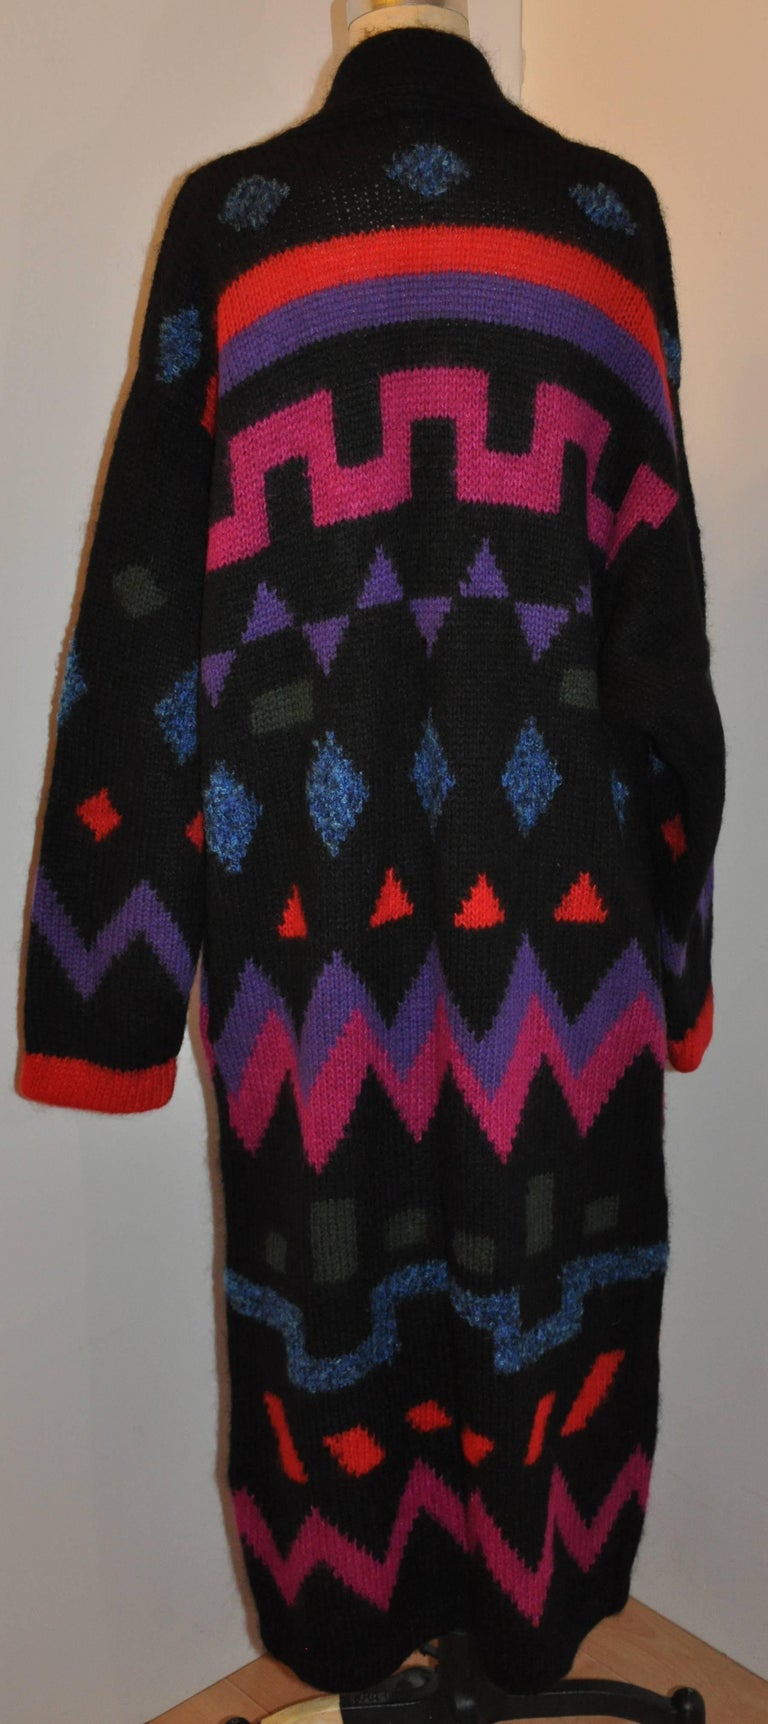 This wonderful bold multi-color and multi-textured abstract maxi woven cardigan coat combined with 45 percent wool, 30 percent acrylic and 25 percent nylon and perfect for those chilly and cozy days. Featuring domain-style sleeves, and a